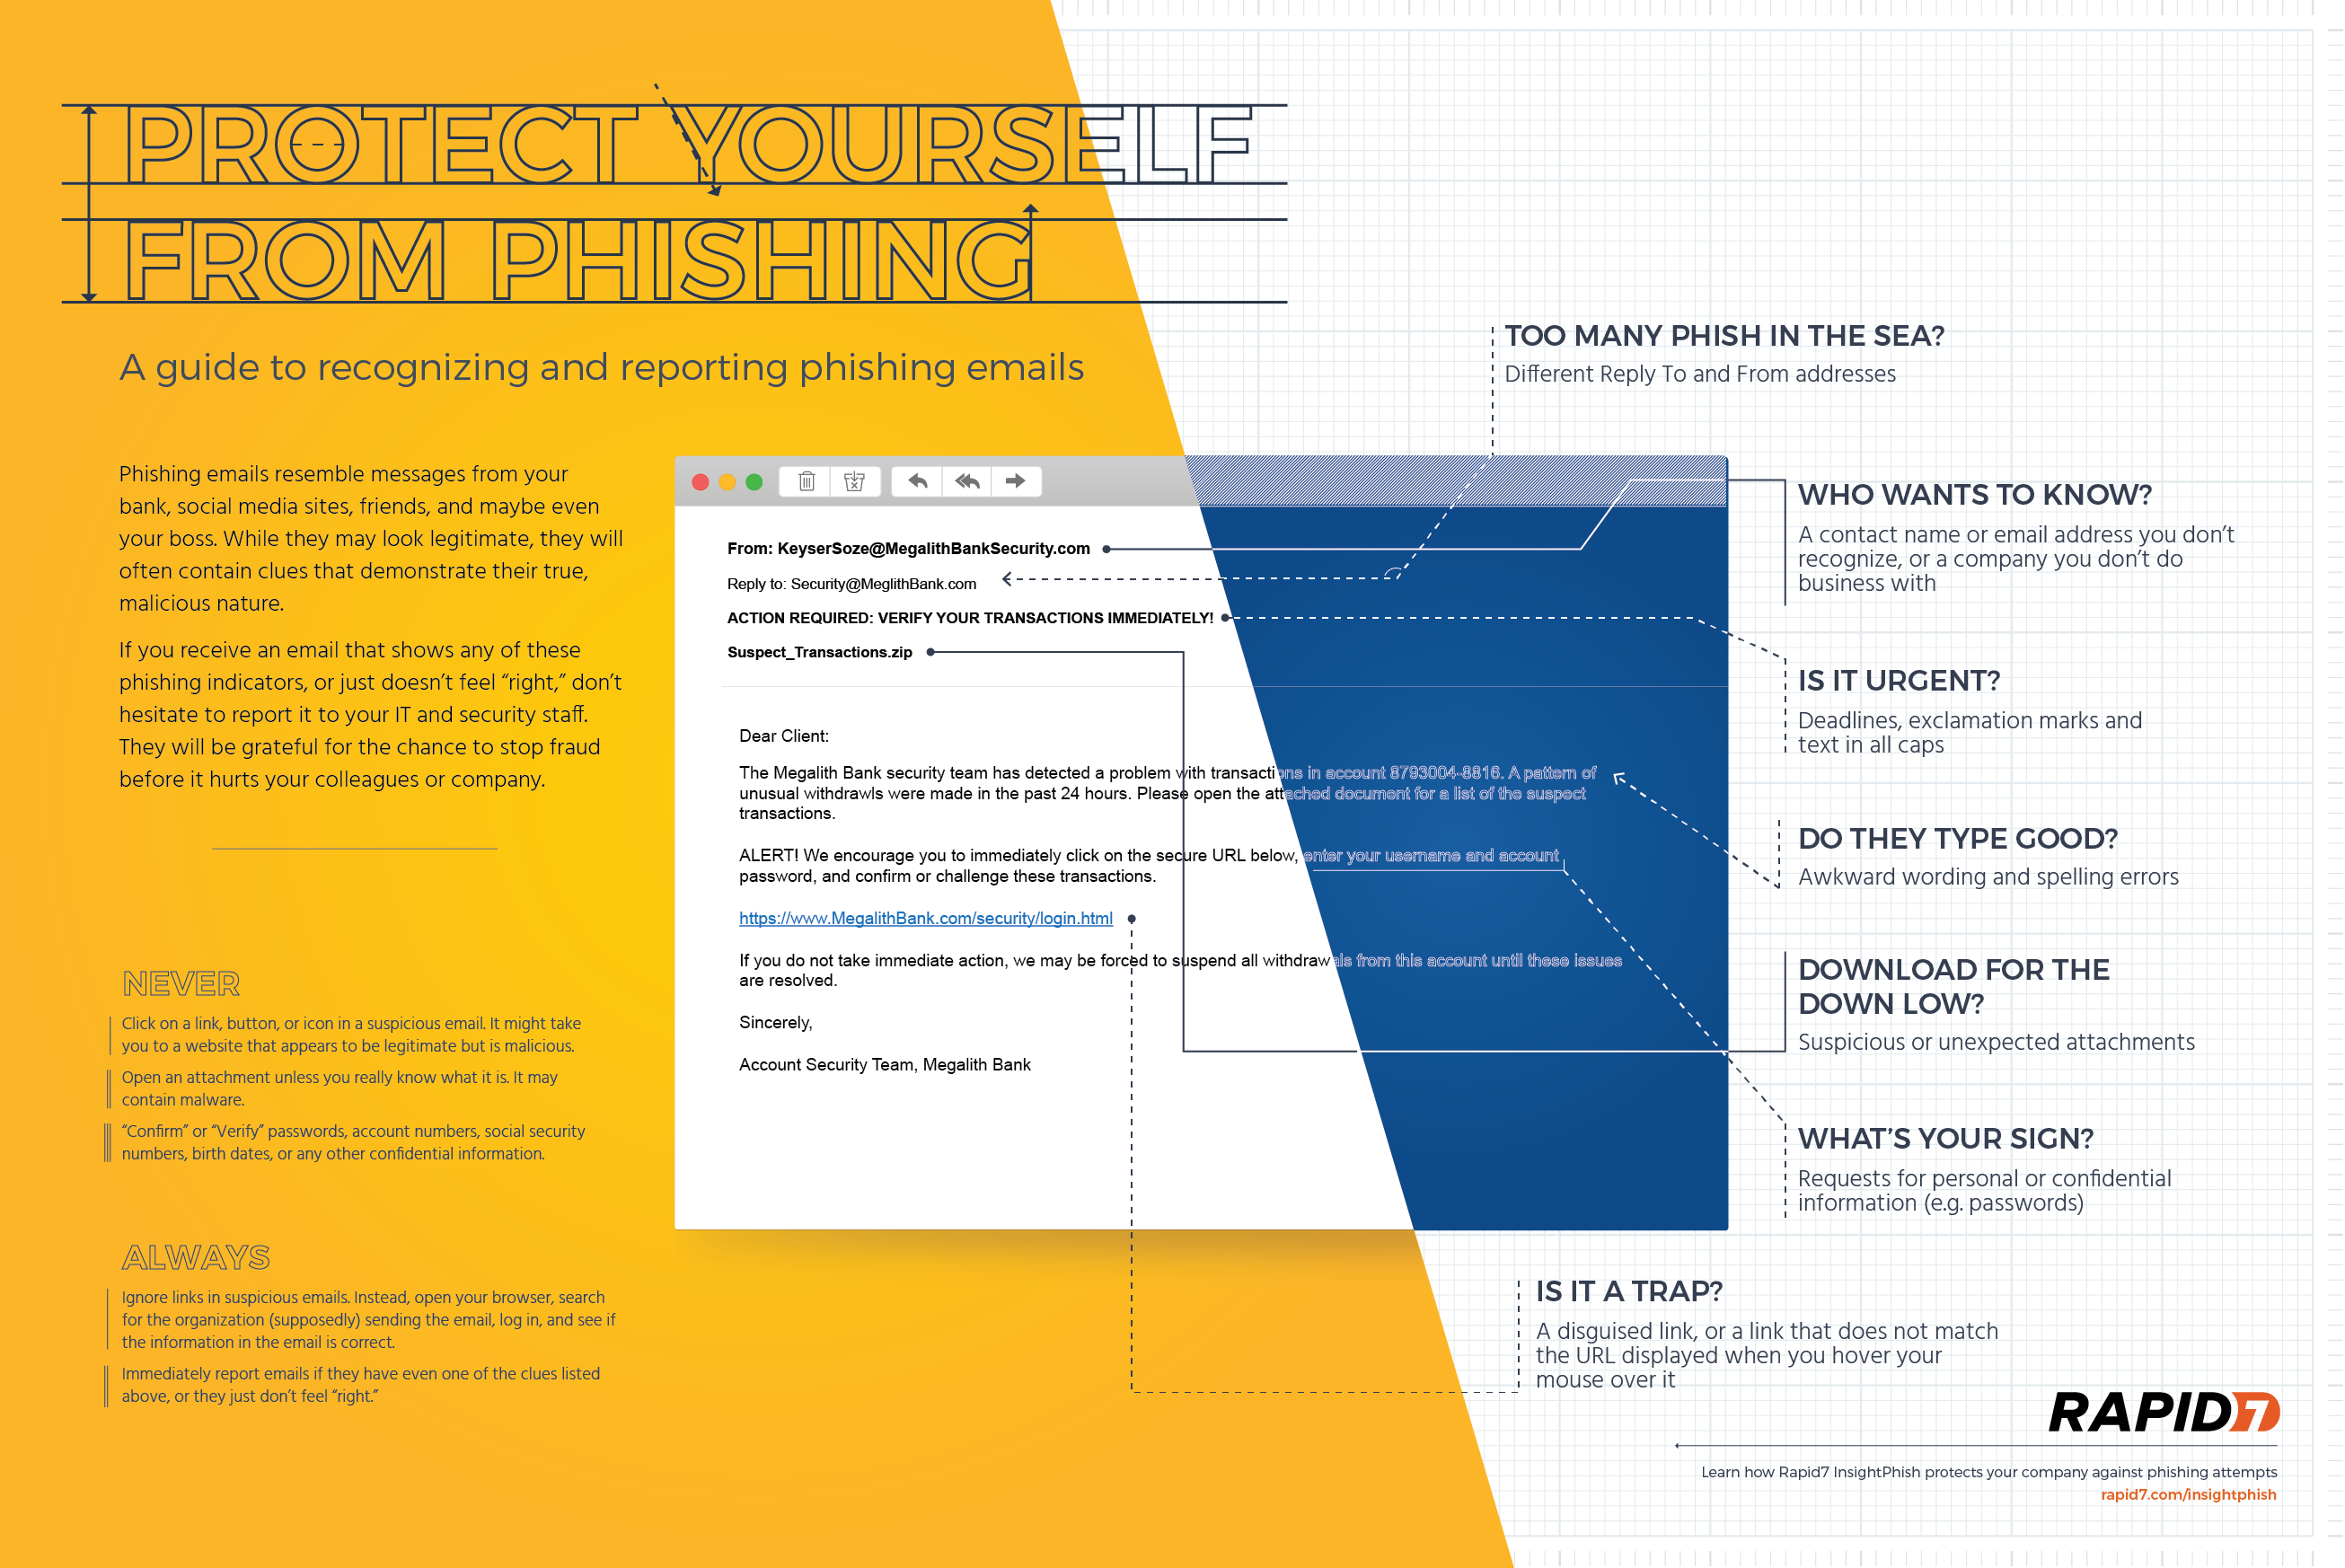 Rapid7 Infographic: Protect Yourself from Phishing